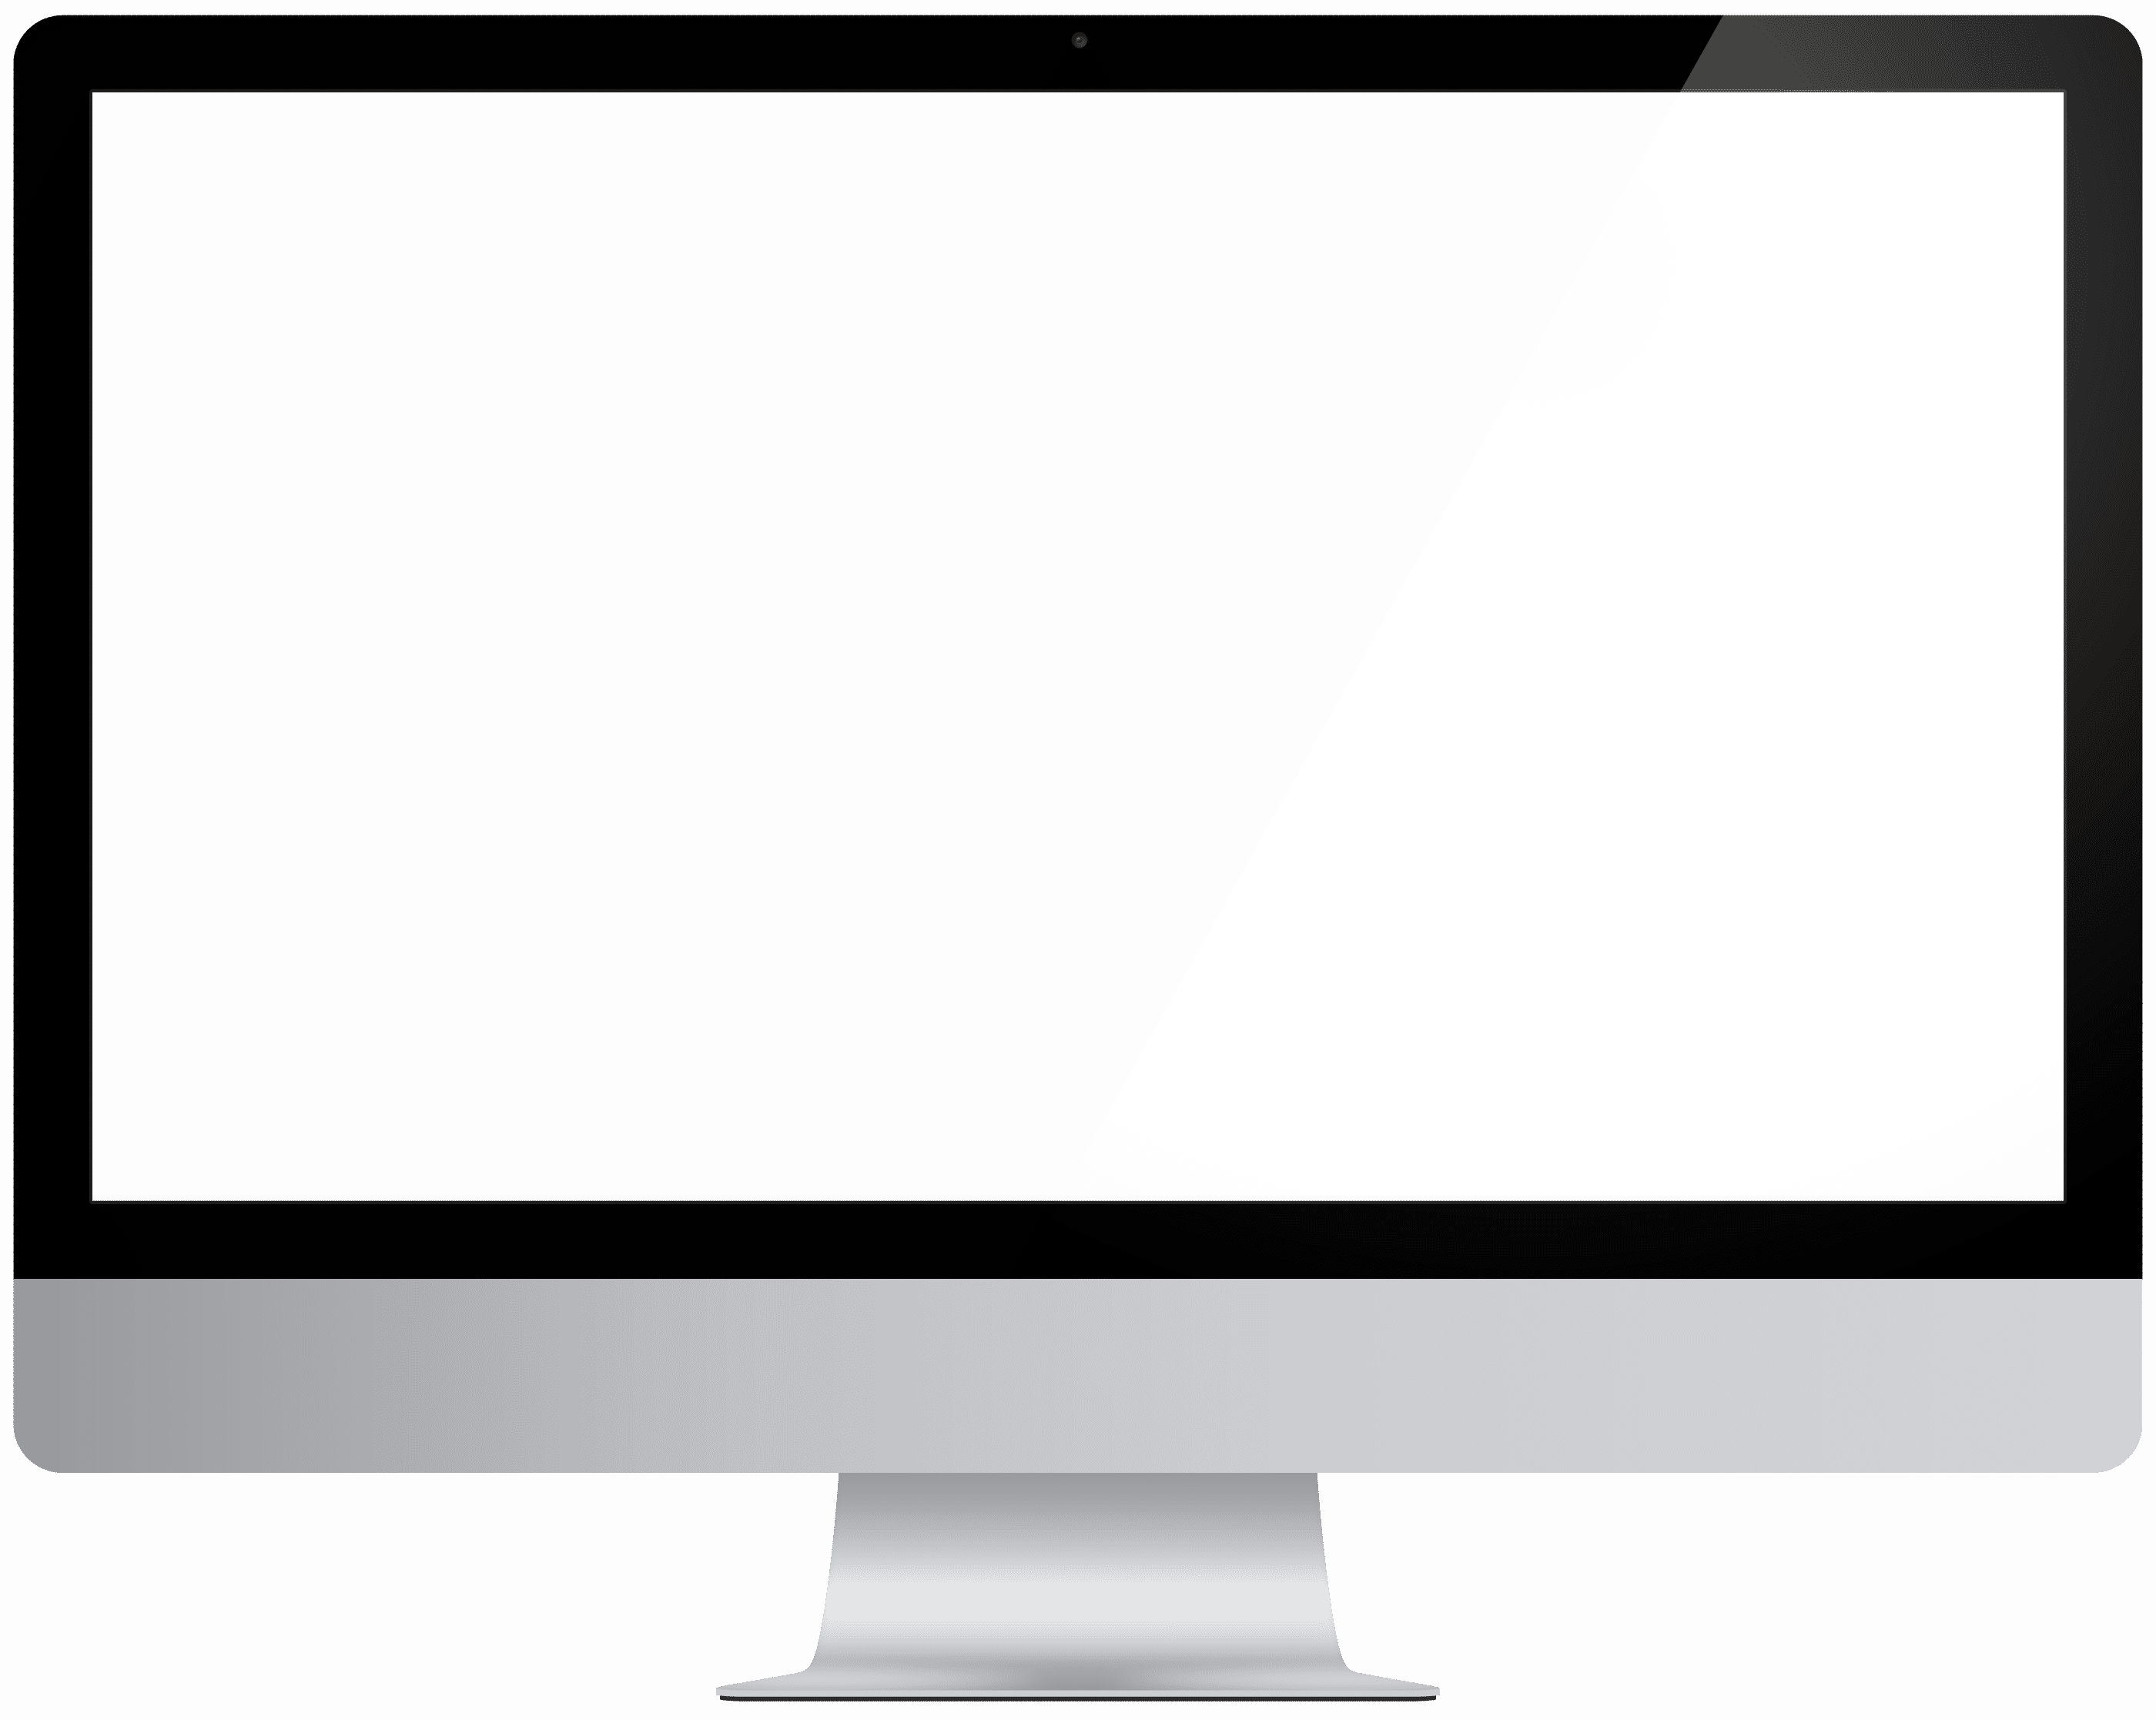 Monitor drawing imac. Template april onthemarch co